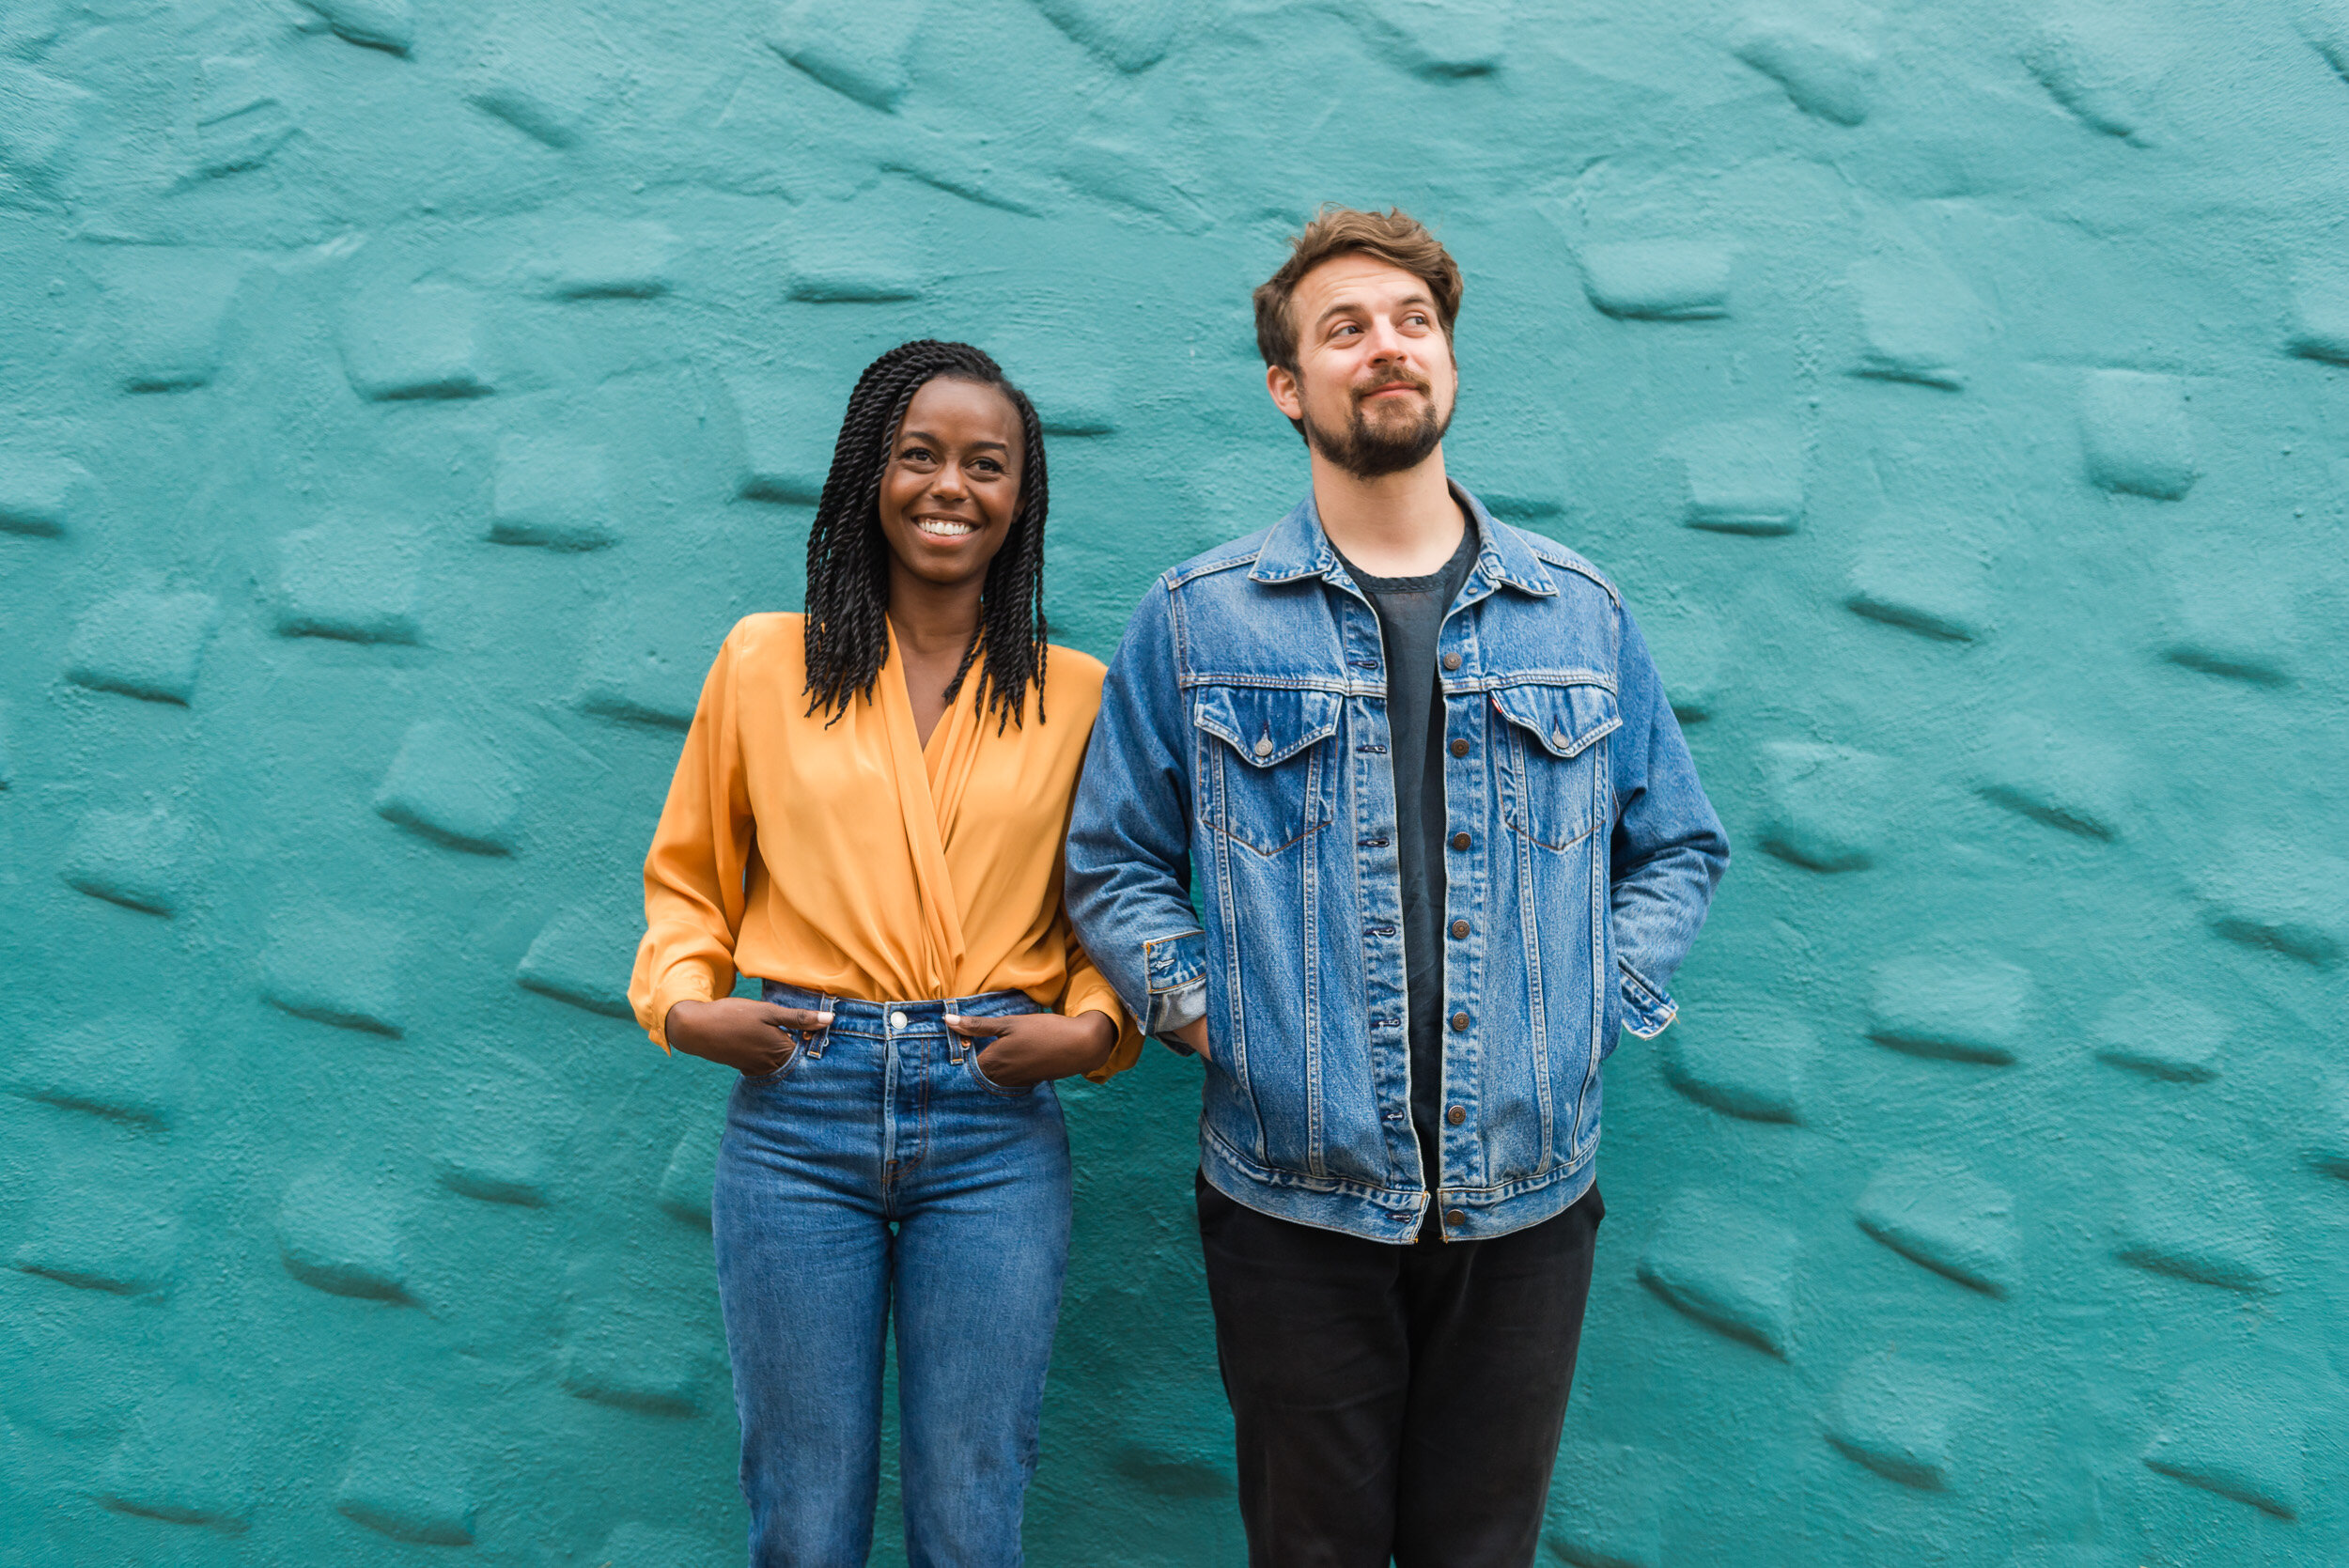 Engaged couple wearing Levis jeans and jack pose in front of a colorful house